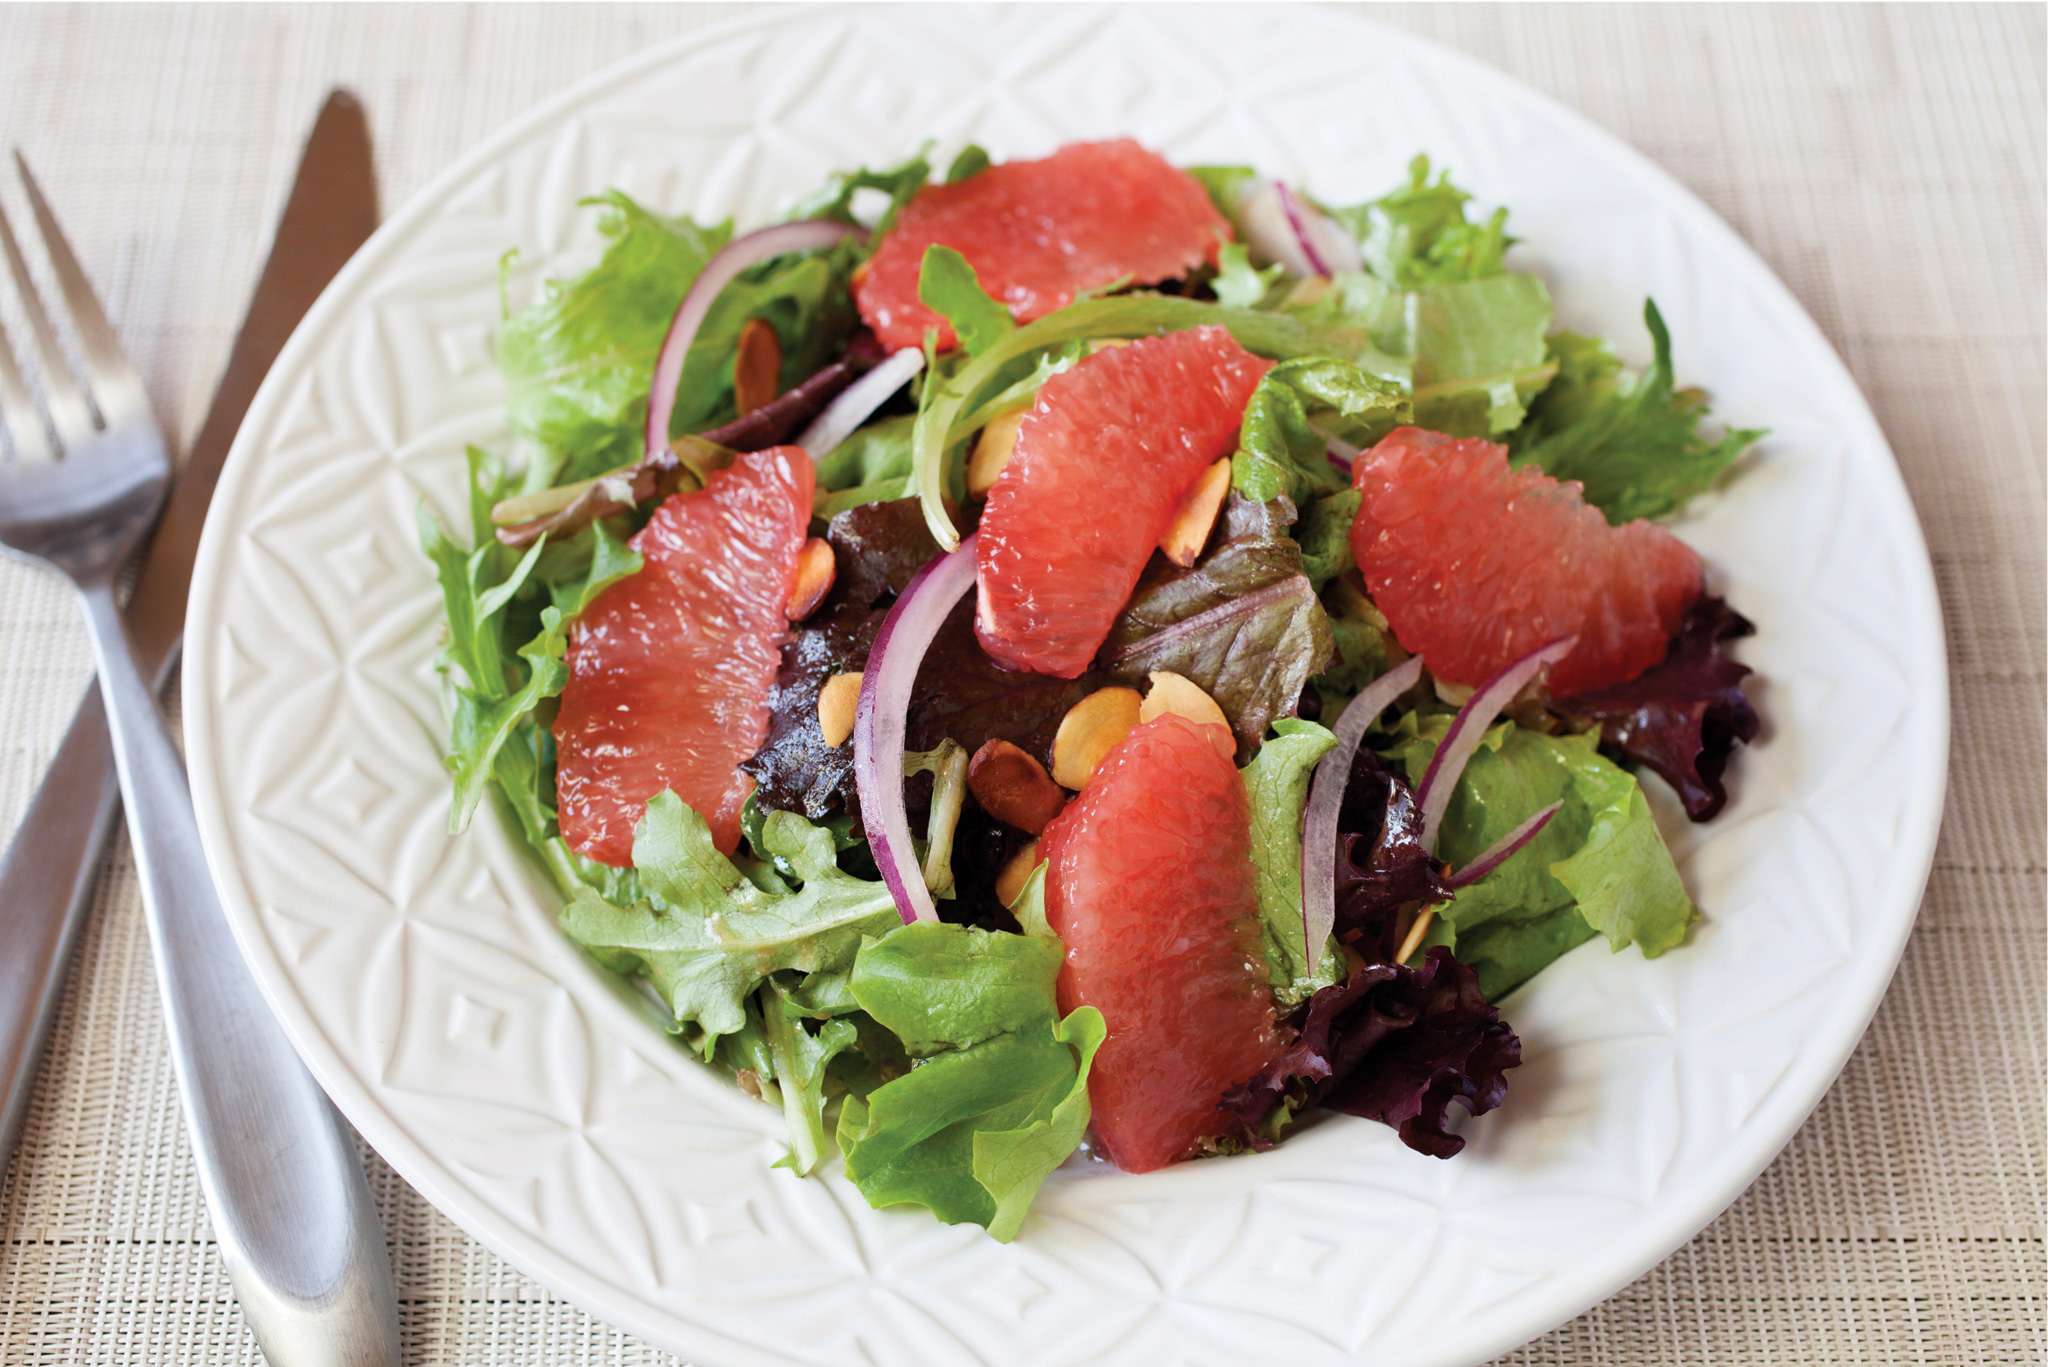 Mixed Green Salad with Grapefruit and Almonds